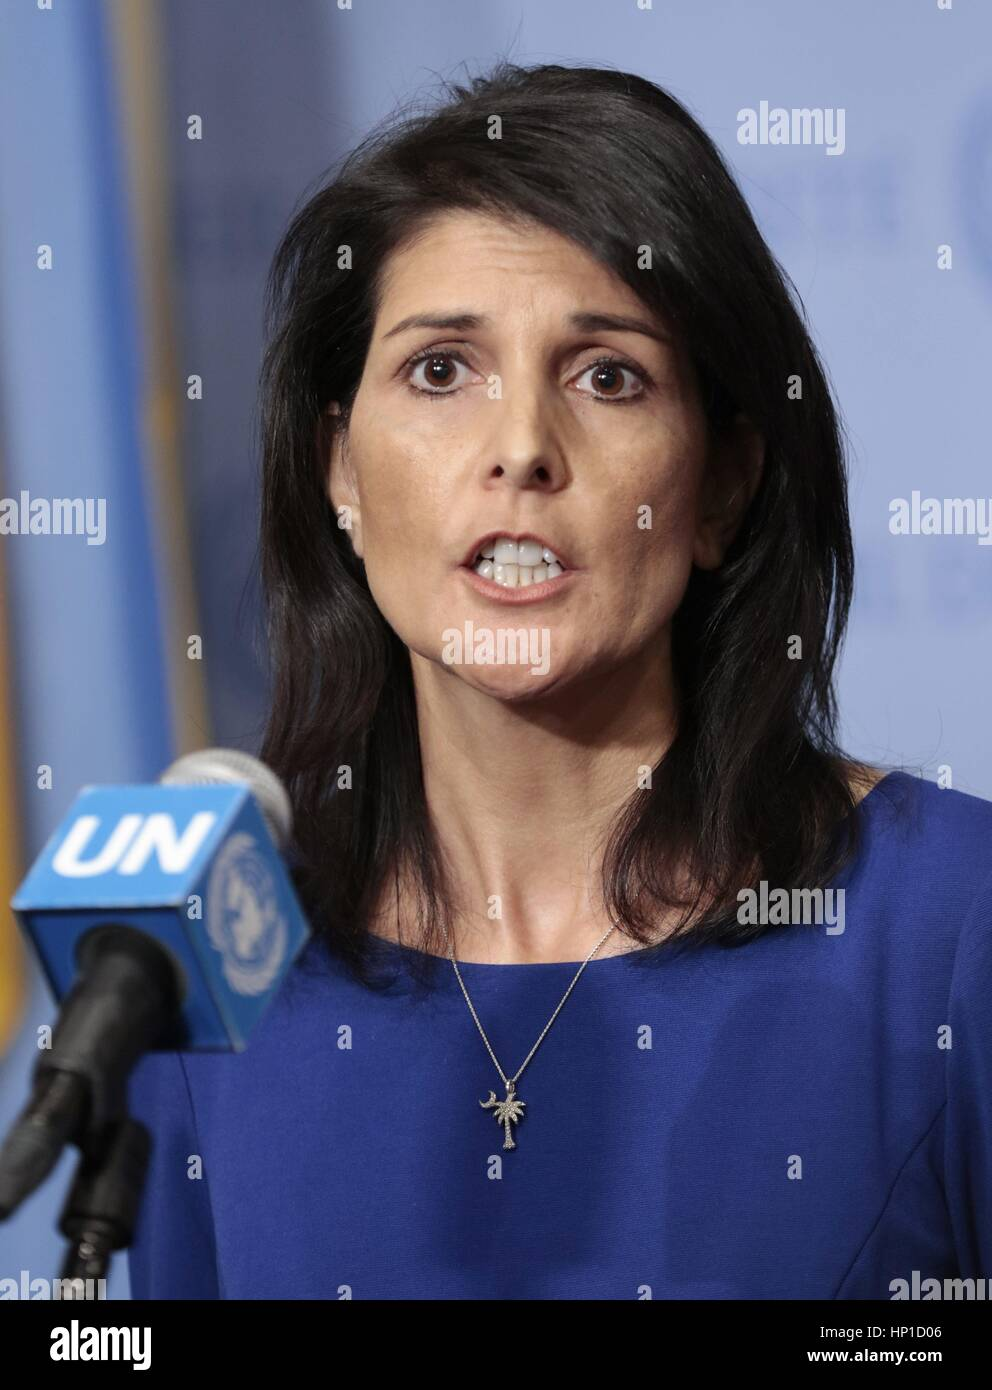 UN, New York, uSA. 16th February 2017. Nikki Haley, Ambassador of the United States to the United Nations Press - Stock Image